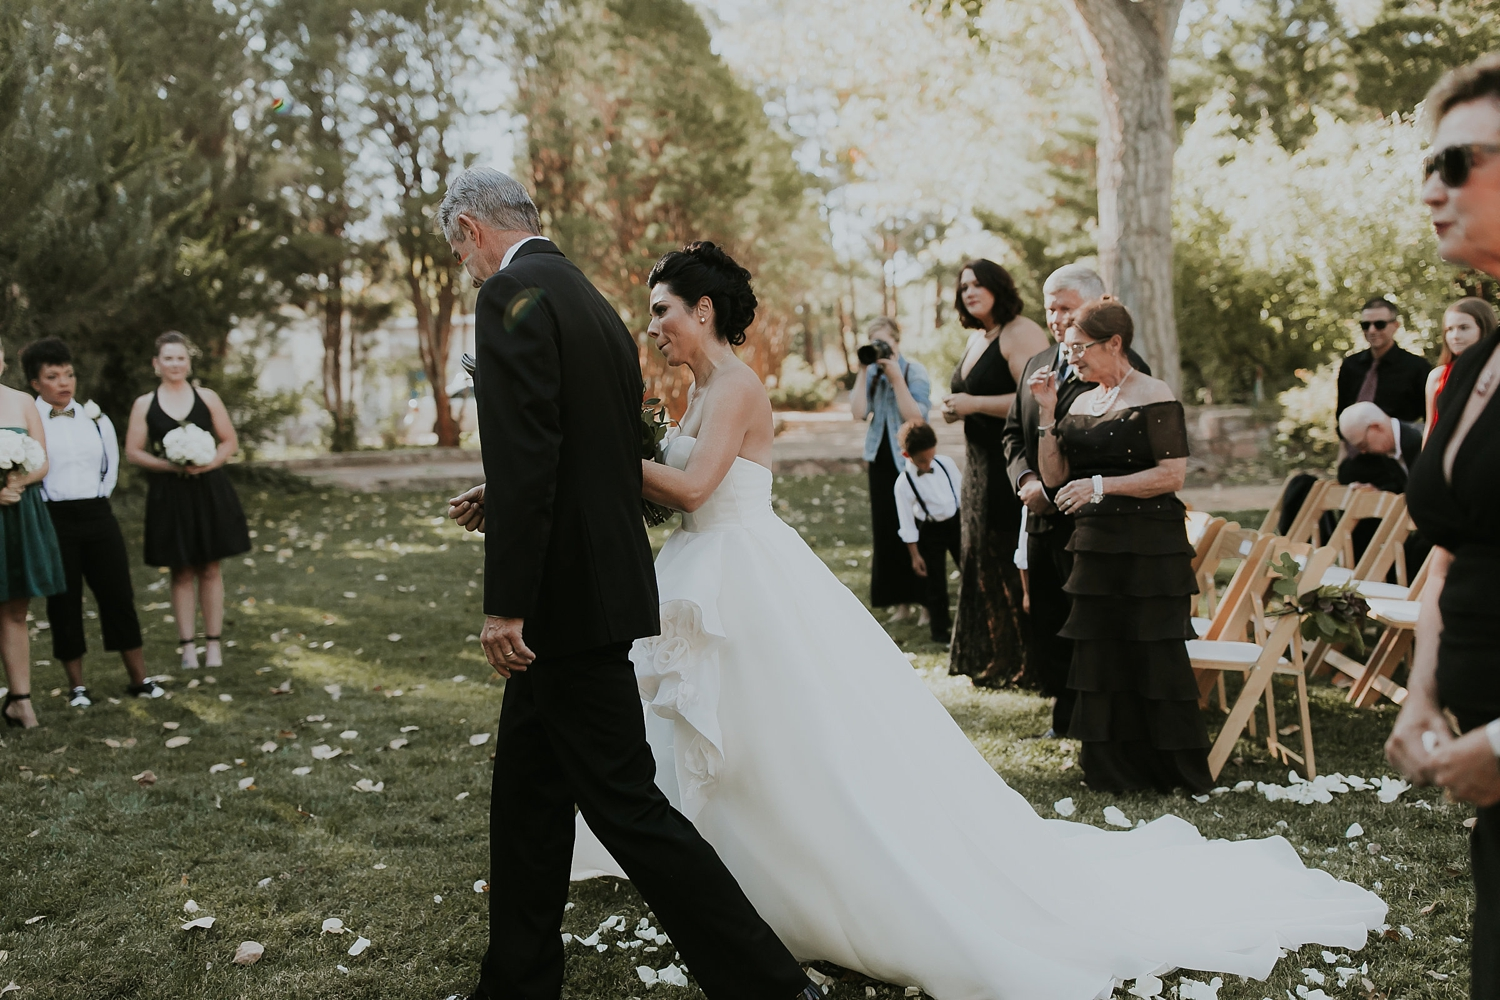 Alicia+lucia+photography+-+albuquerque+wedding+photographer+-+santa+fe+wedding+photography+-+new+mexico+wedding+photographer+-+los+poblanos+wedding+-+los+poblanos+fall+wedding+-+los+poblanos+october+wedding_0059.jpg